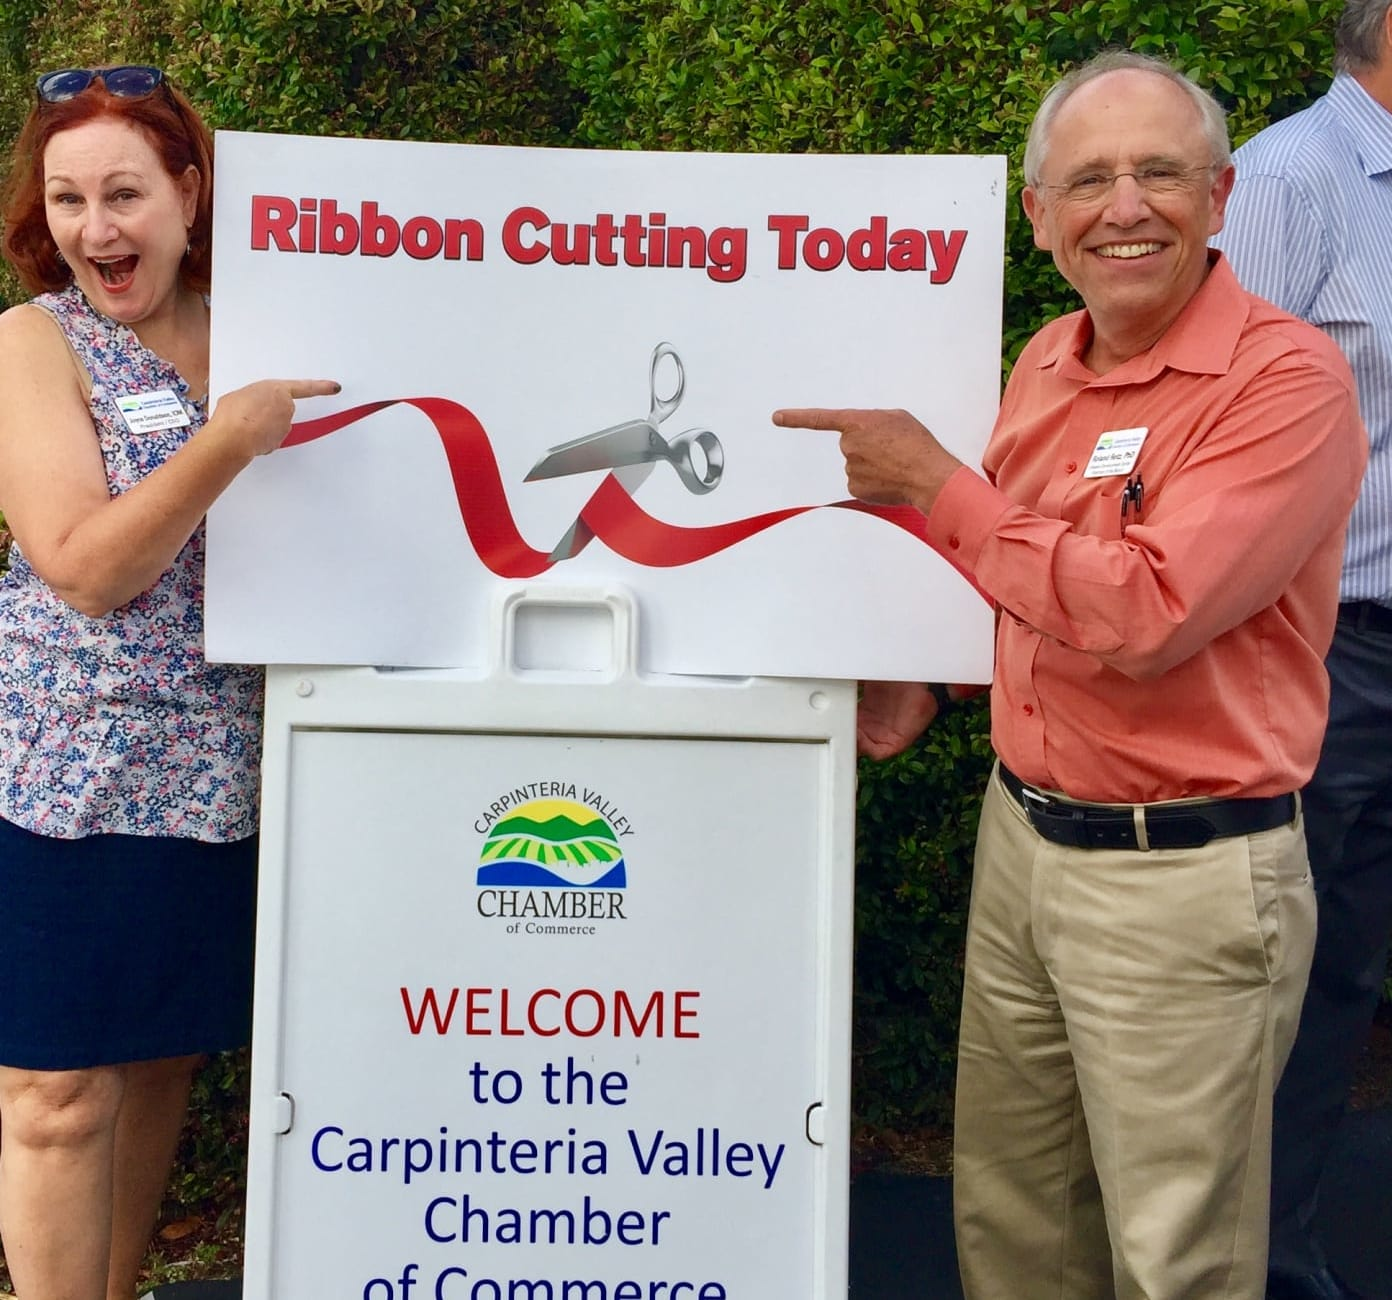 Ribbon-Cutting-Today-w1392.jpg